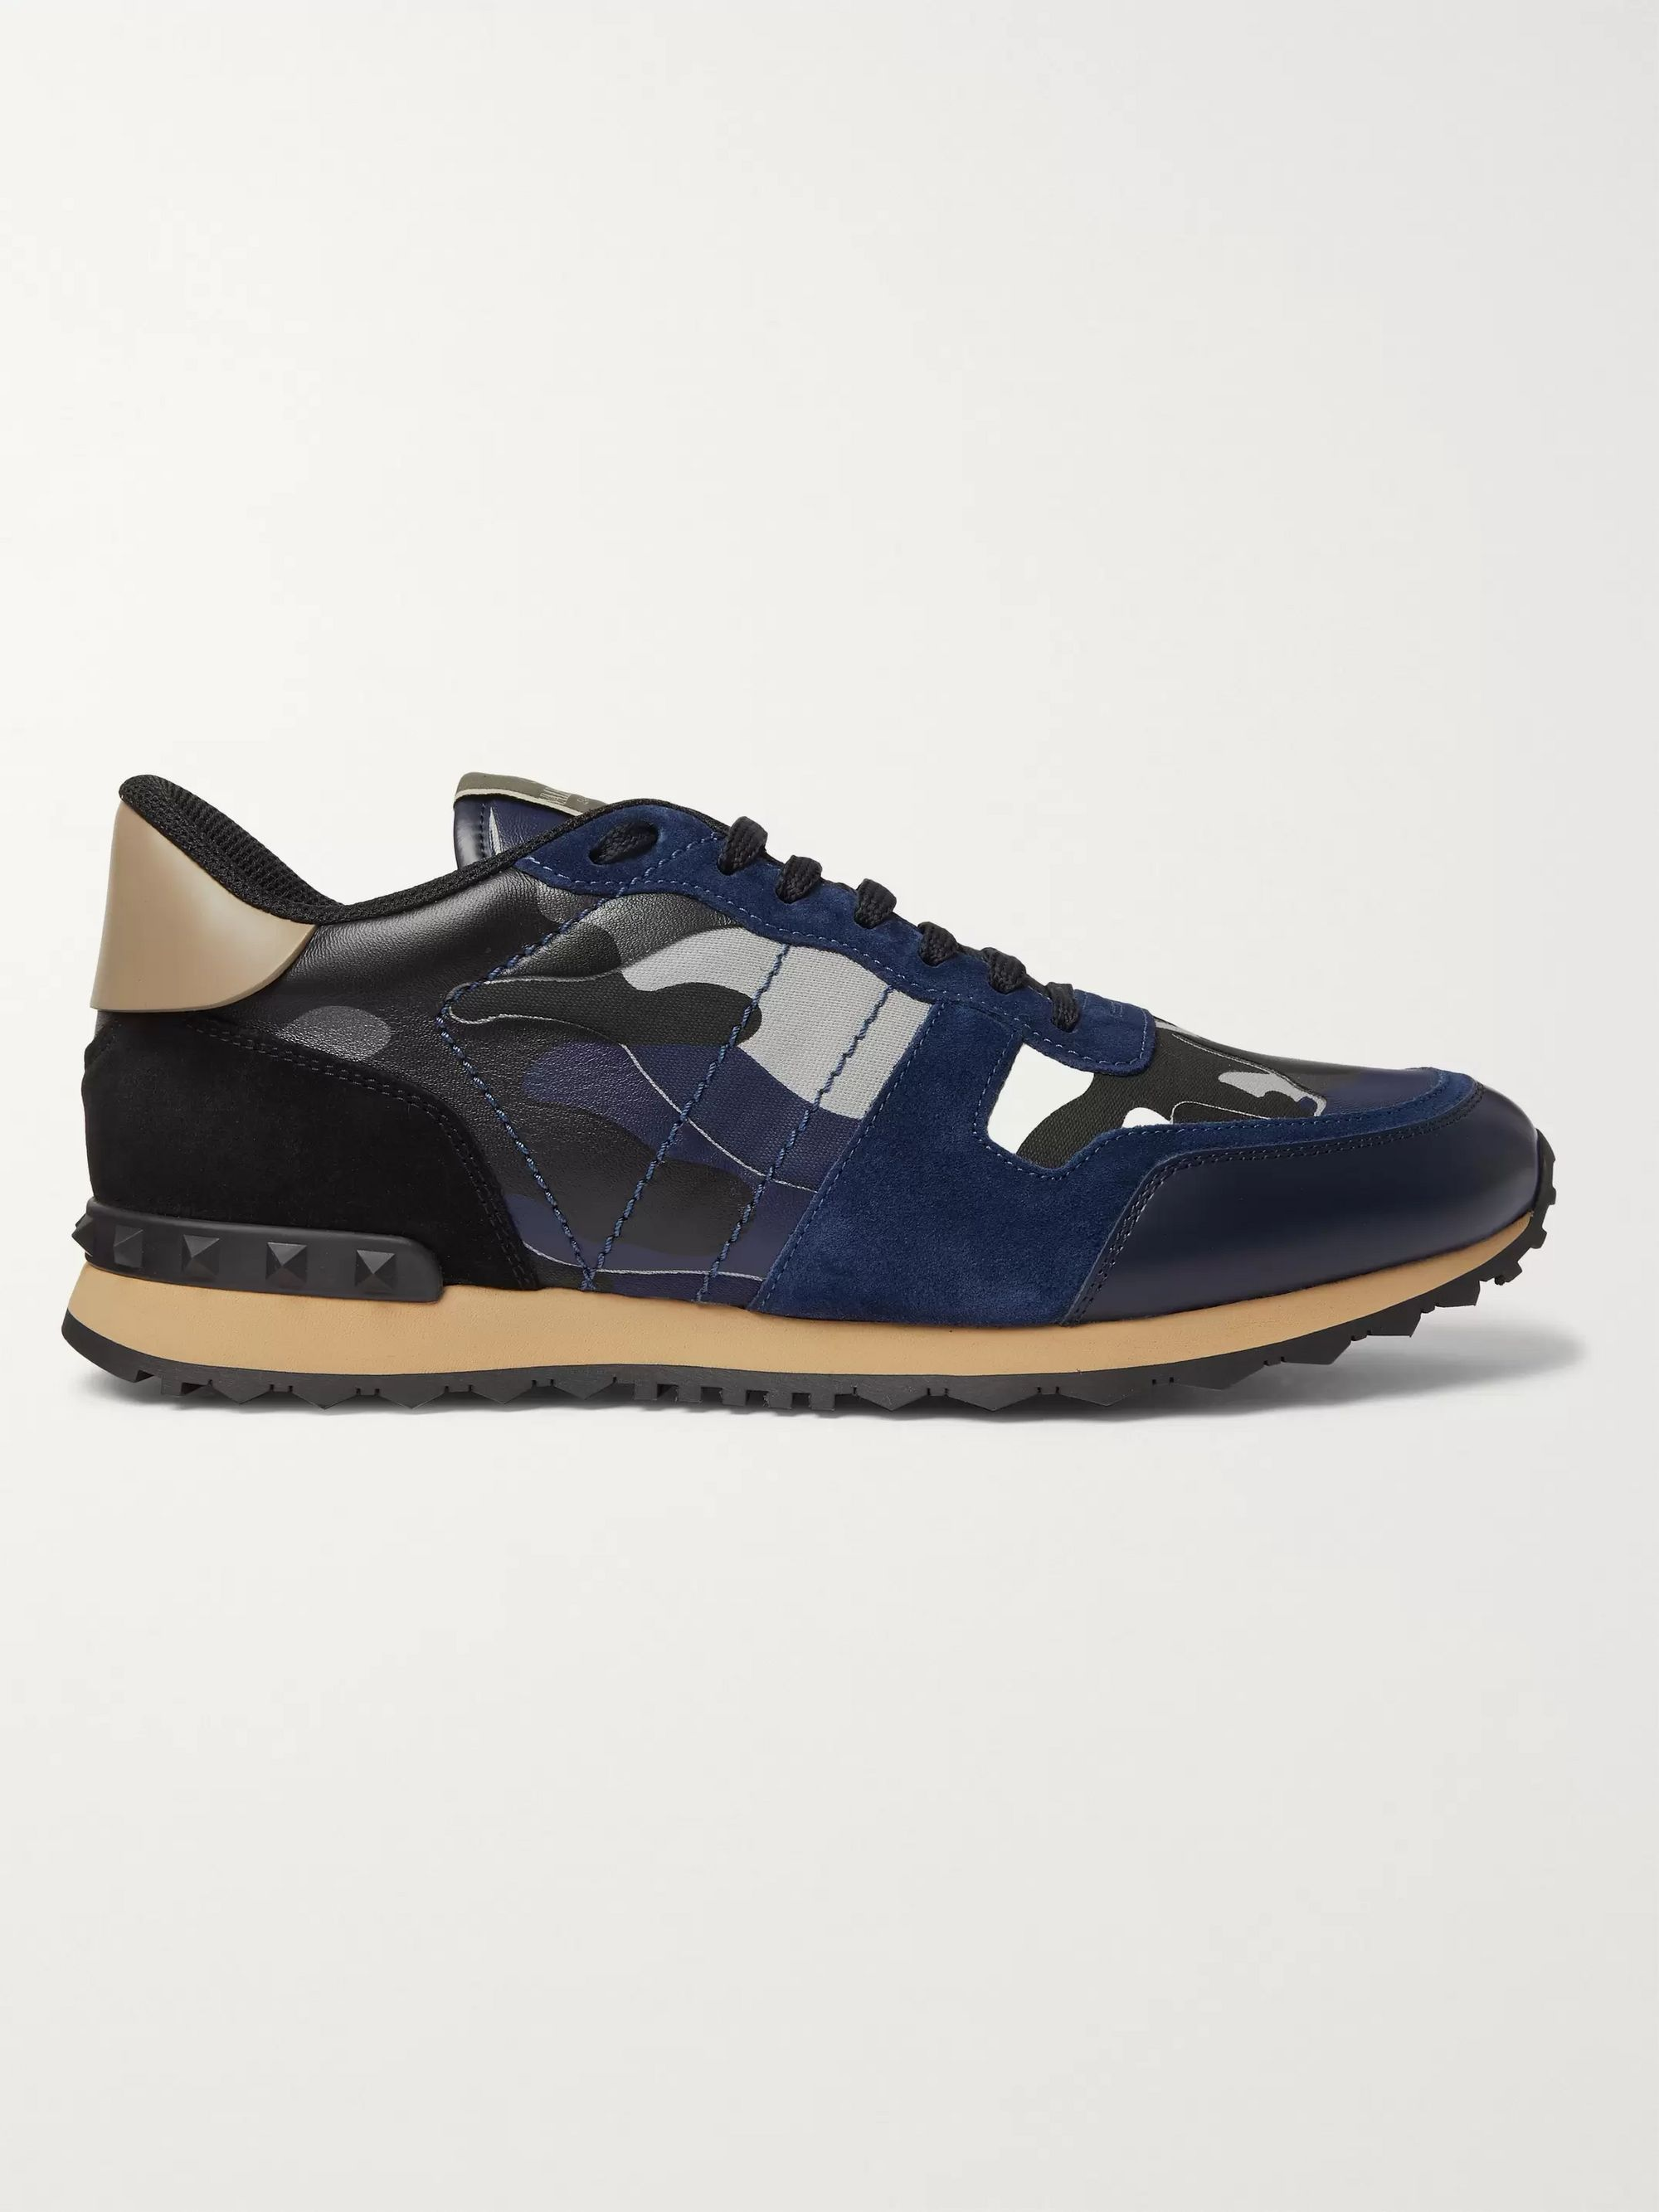 Valentino Valentino Garavani Rockrunner Camouflage Suede and Leather-Trimmed Canvas Sneakers